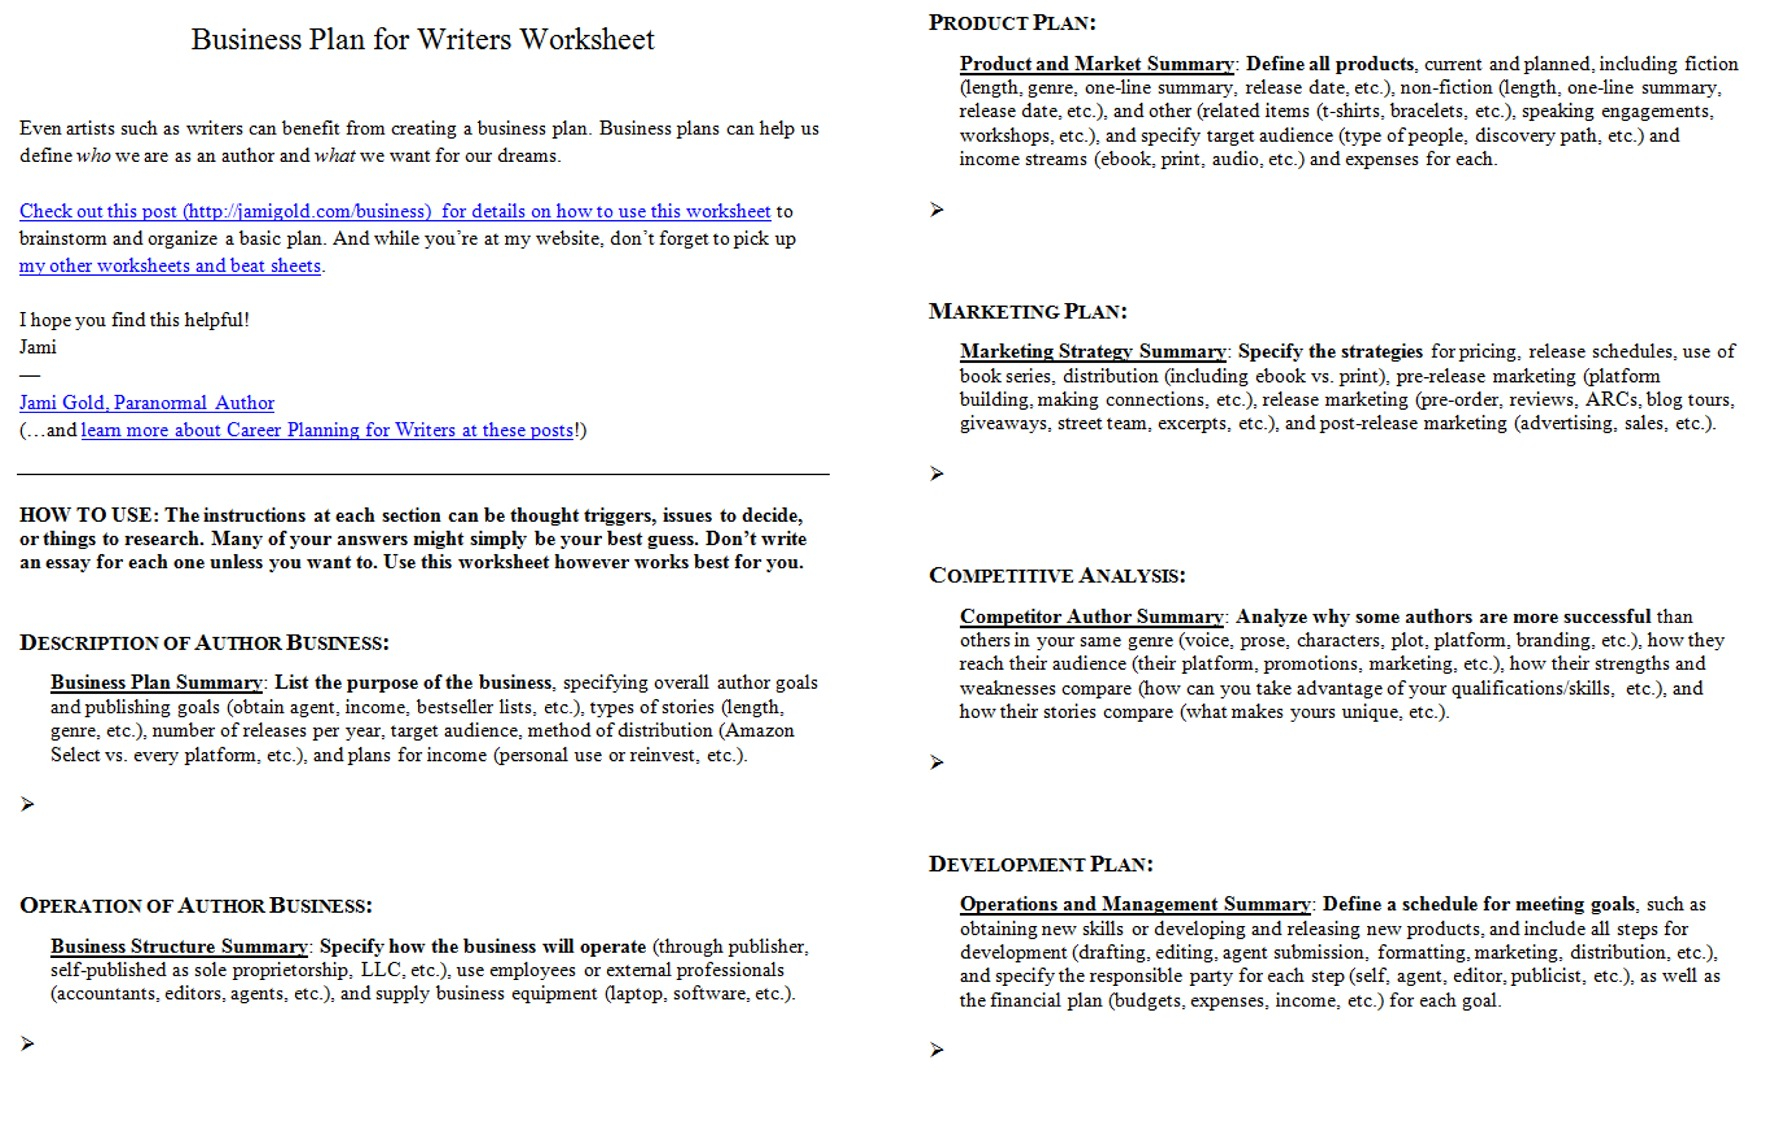 Proatmealus  Winsome Worksheets For Writers  Jami Gold Paranormal Author With Interesting Screen Shot Of Both Pages Of The Business Plan For Writers Worksheet With Adorable Free Fun Worksheets Also Geometry Th Grade Worksheets In Addition Free Letter A Worksheets And Nd Grade Weather Worksheets As Well As Identifying Main Idea And Supporting Details Worksheets Additionally Conjunctive Adverb Worksheet From Jamigoldcom With Proatmealus  Interesting Worksheets For Writers  Jami Gold Paranormal Author With Adorable Screen Shot Of Both Pages Of The Business Plan For Writers Worksheet And Winsome Free Fun Worksheets Also Geometry Th Grade Worksheets In Addition Free Letter A Worksheets From Jamigoldcom